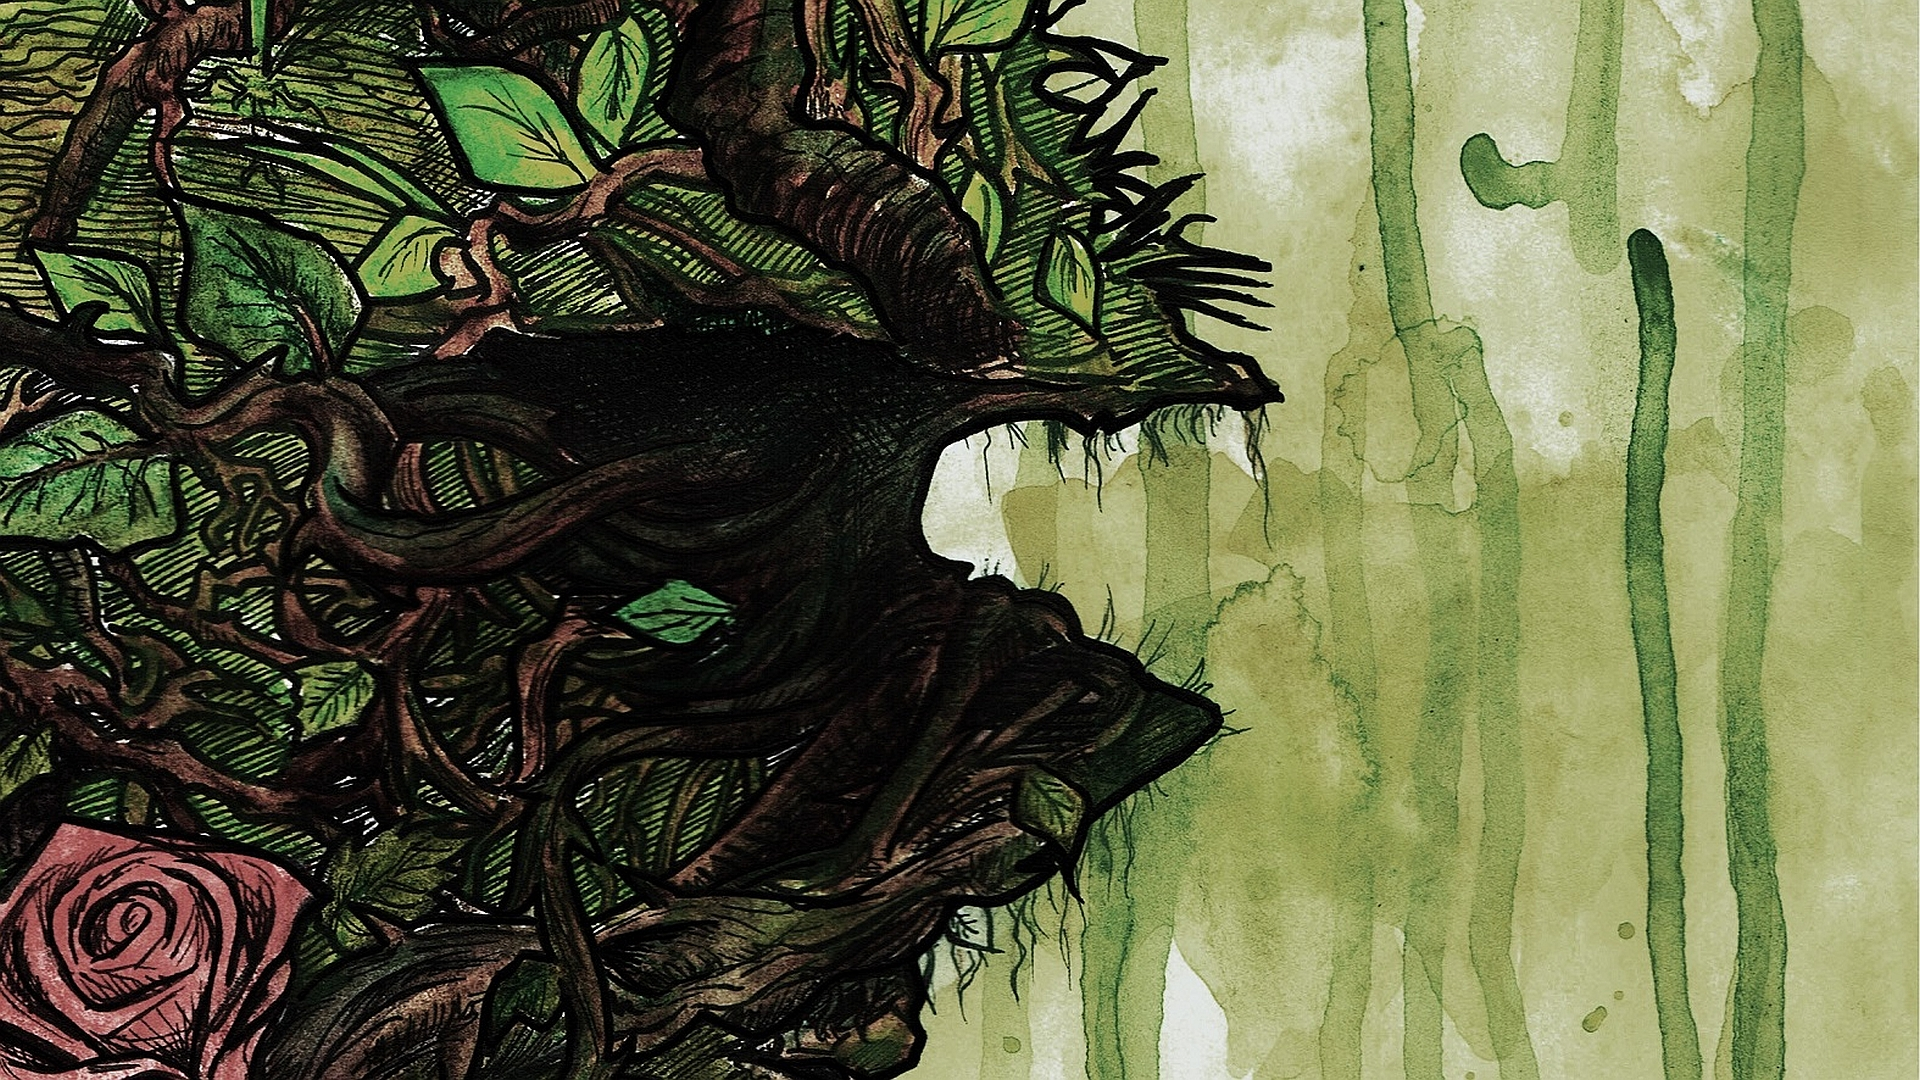 Download Swamp Thing Wallpaper Gallery